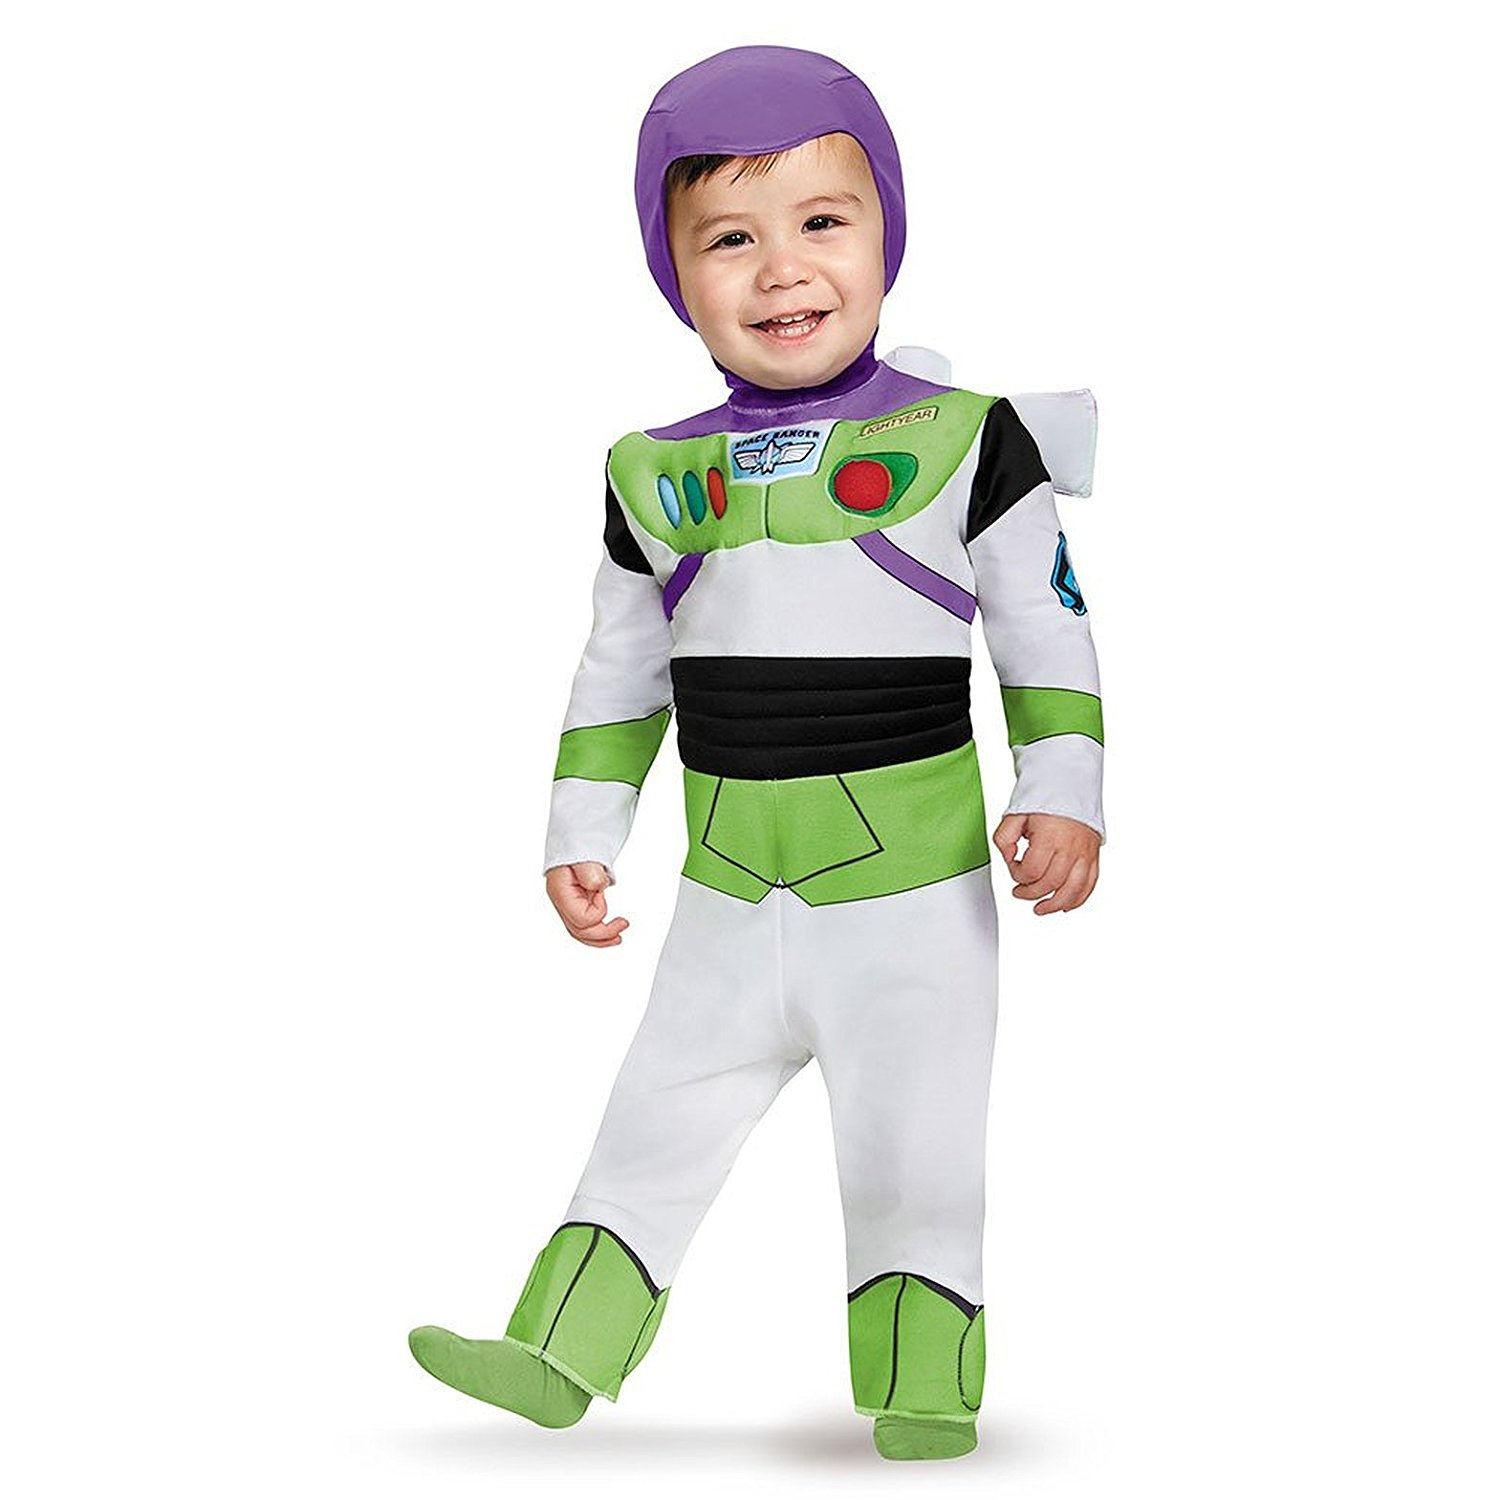 Disguise Costumes Buzz Lightyear Deluxe Costume (Infant), 6-12 Months